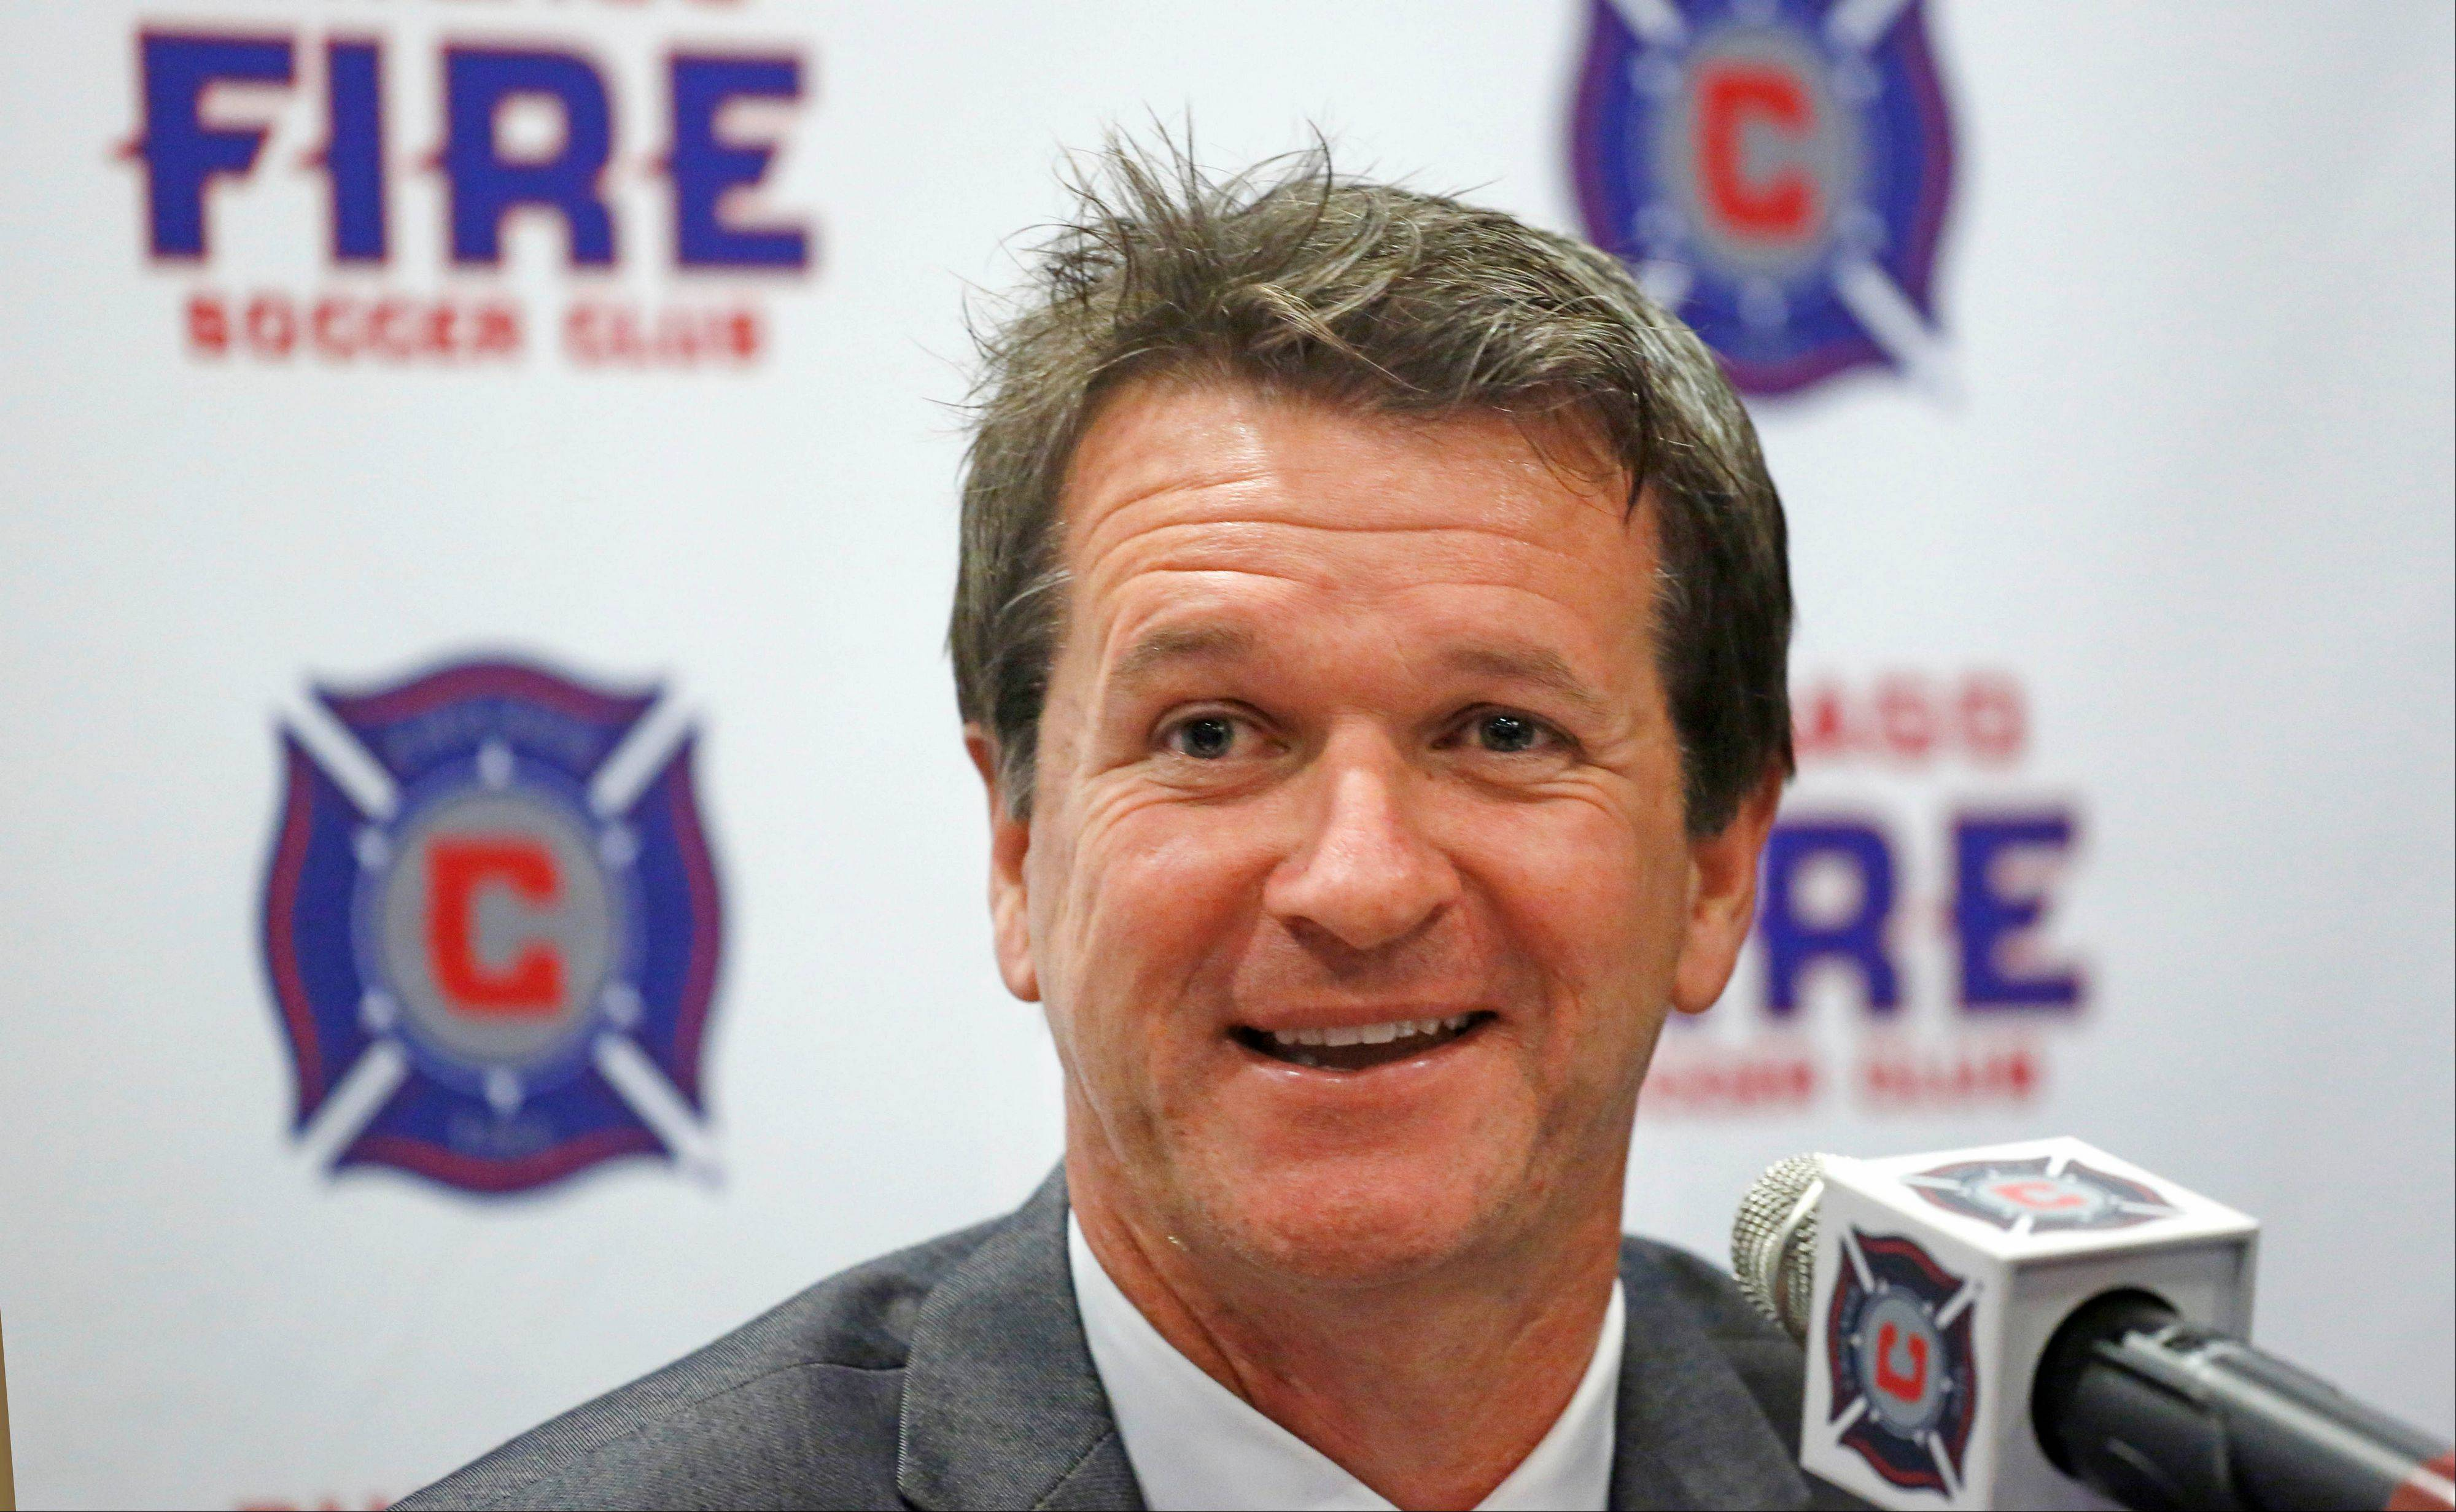 Frank Yallop, the head coach and director of soccer for the Chicago Fire, plans to hire two or three assistant coaches over the next few weeks.